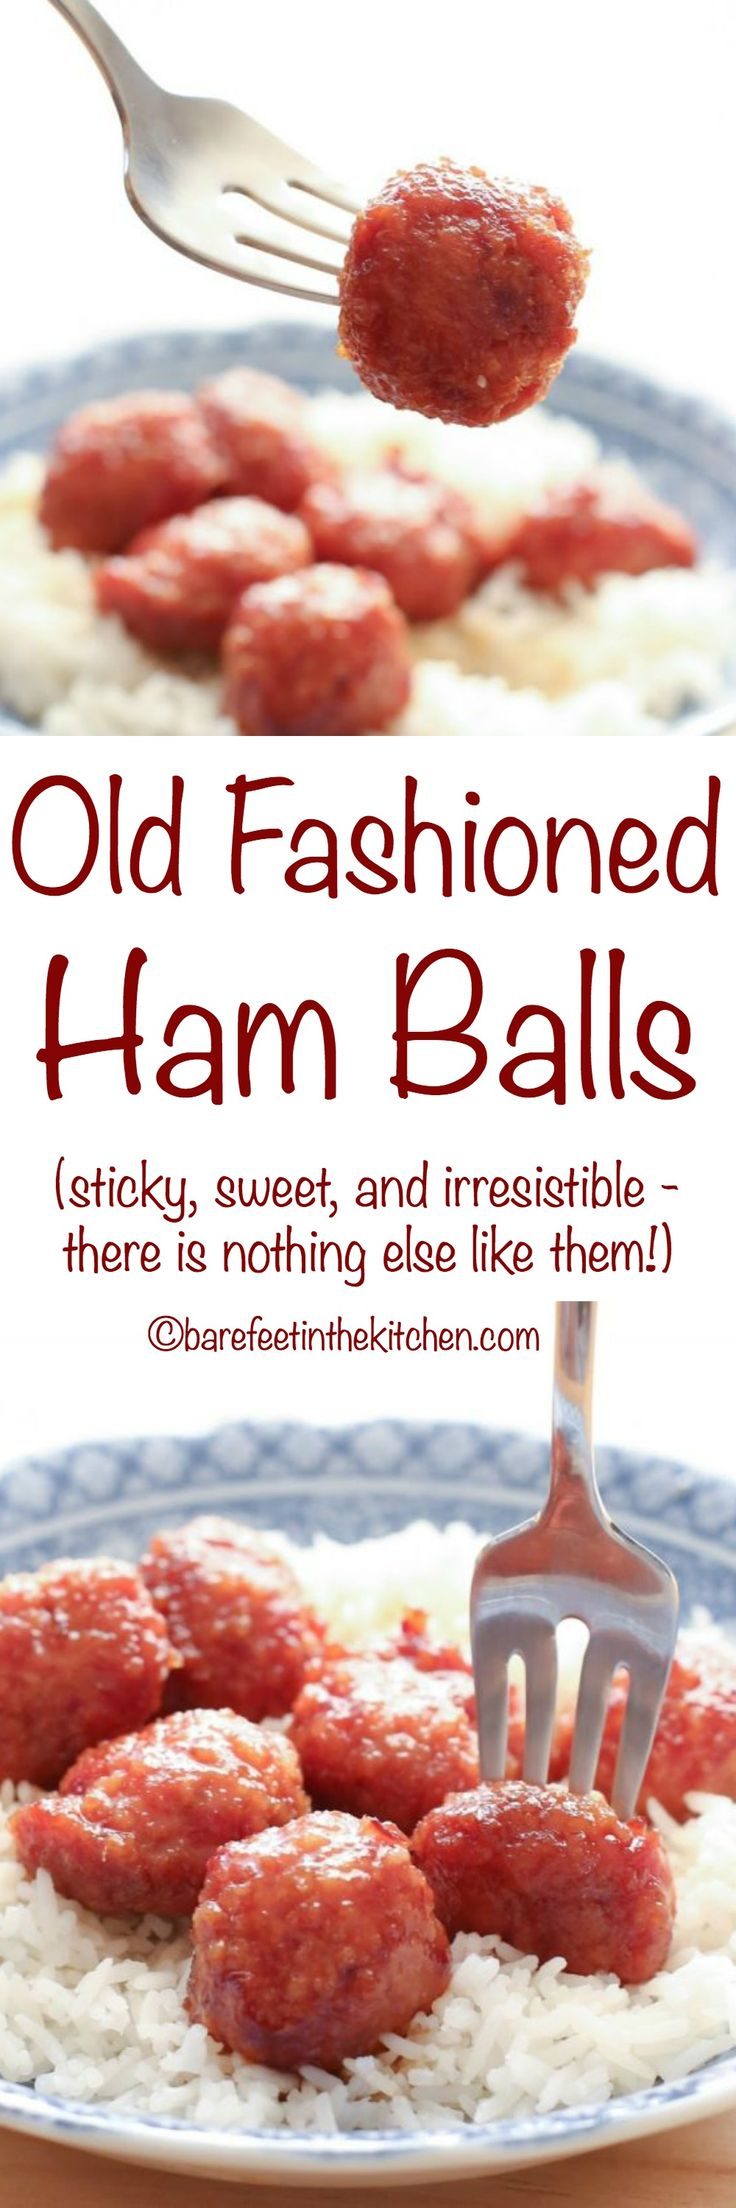 Old Fashioned Ham Balls are sticky, sweet, and completely irresistible! get the recipe at barefeetinthekitchen.com